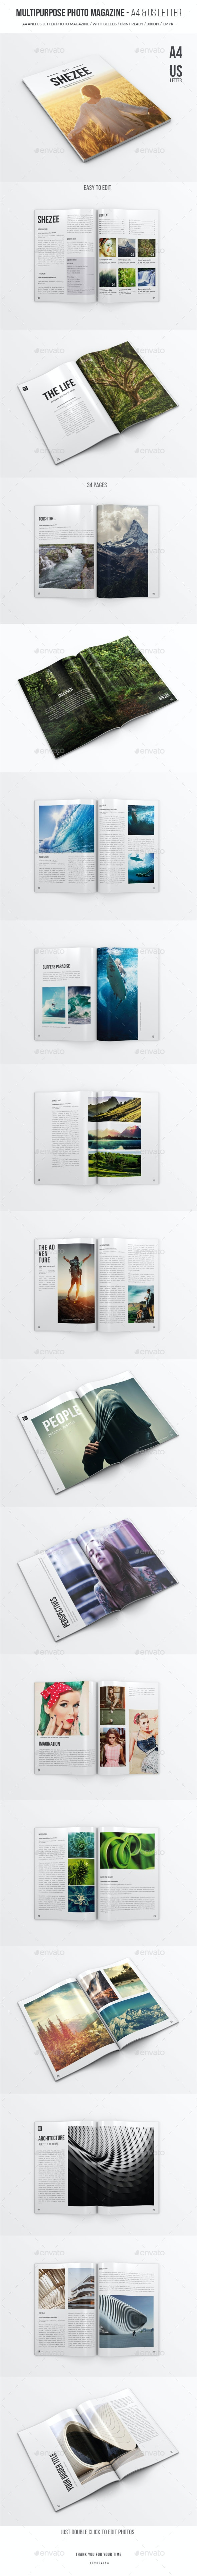 Multipurpose Photo Magazine - A4 & US Letter - Magazines Print Templates